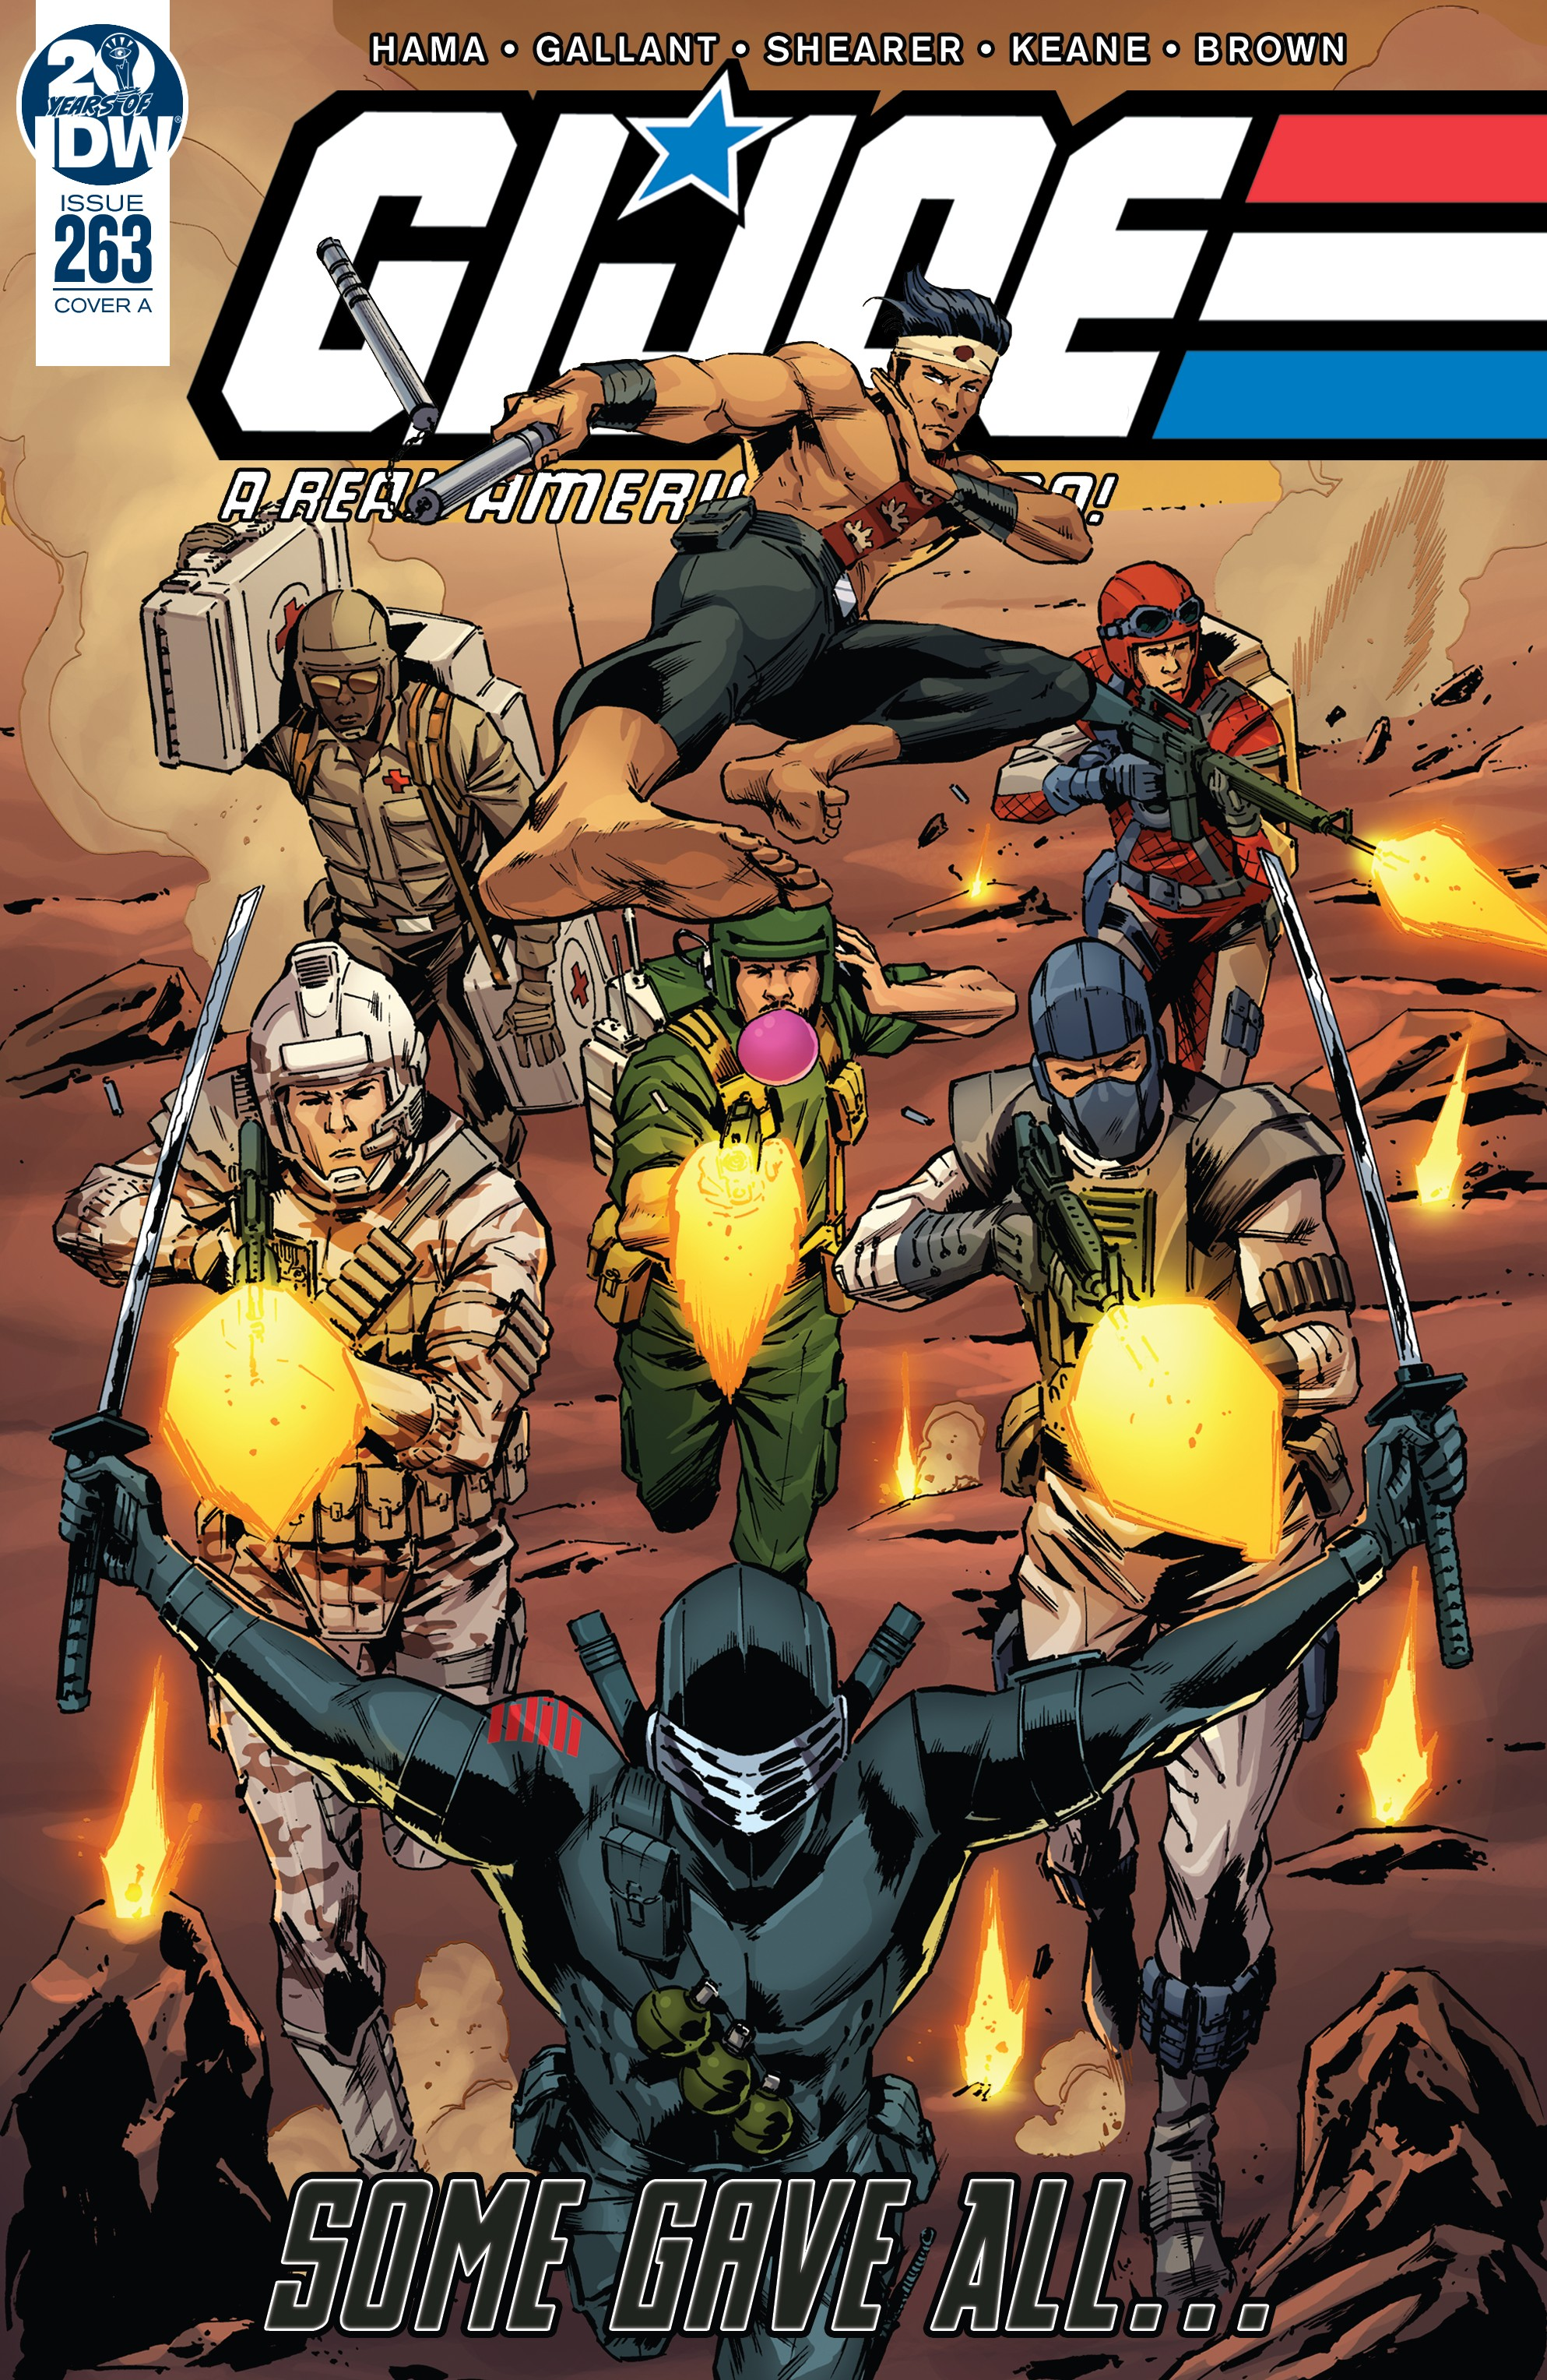 G.I. Joe: A Real American Hero (2011-): Chapter 263 - Page 1